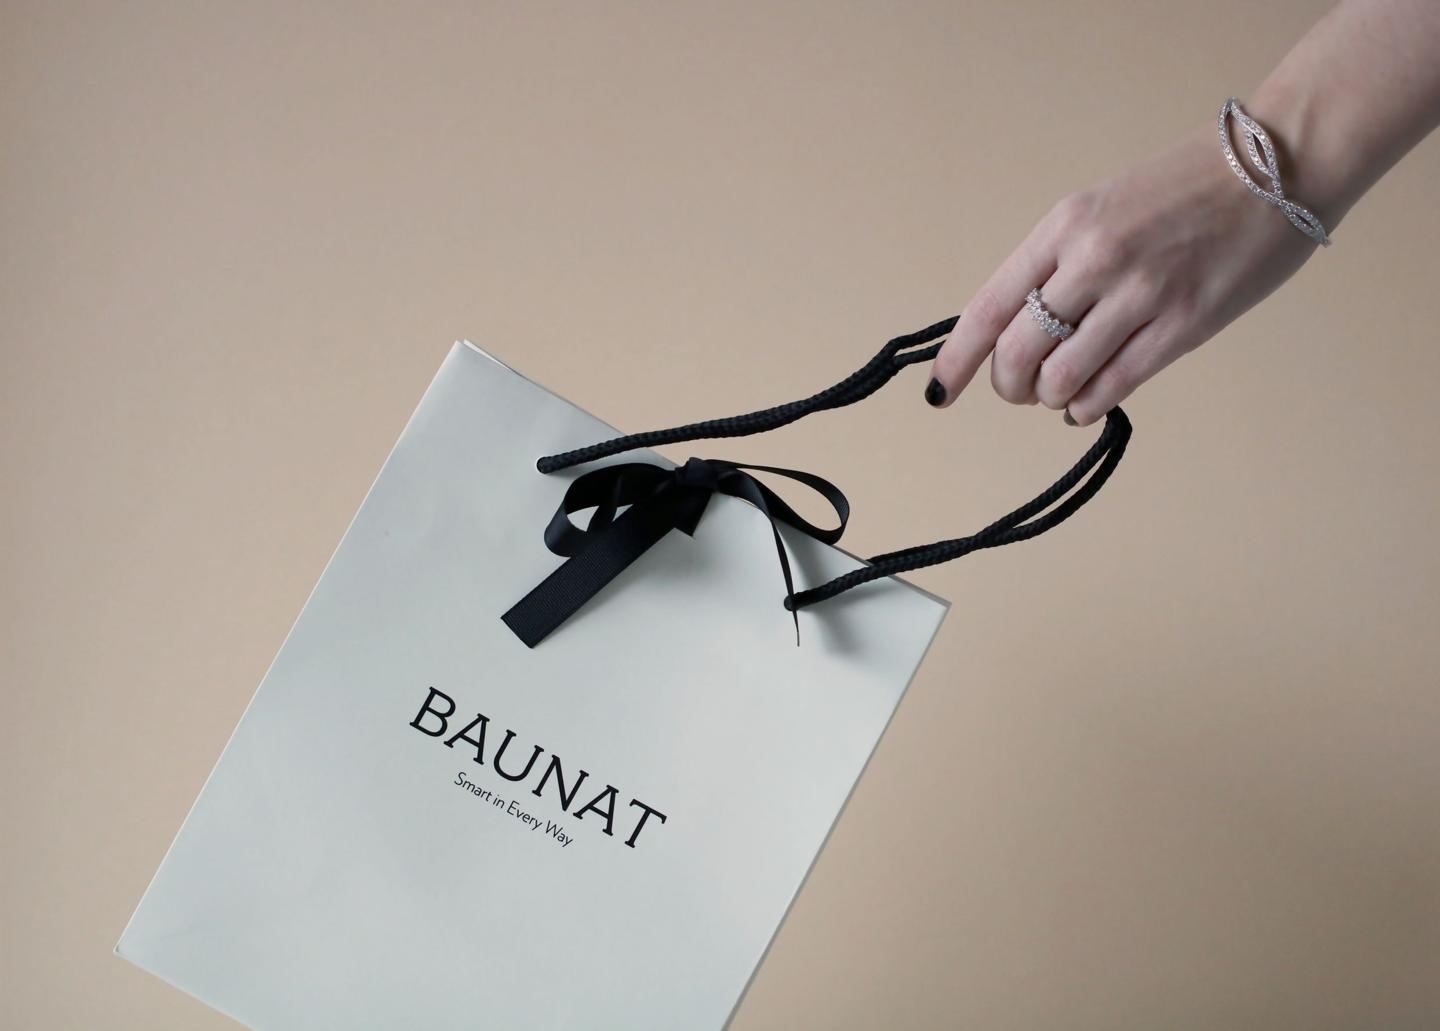 BAUNAT the art of giving at the best diamond prices on the market.